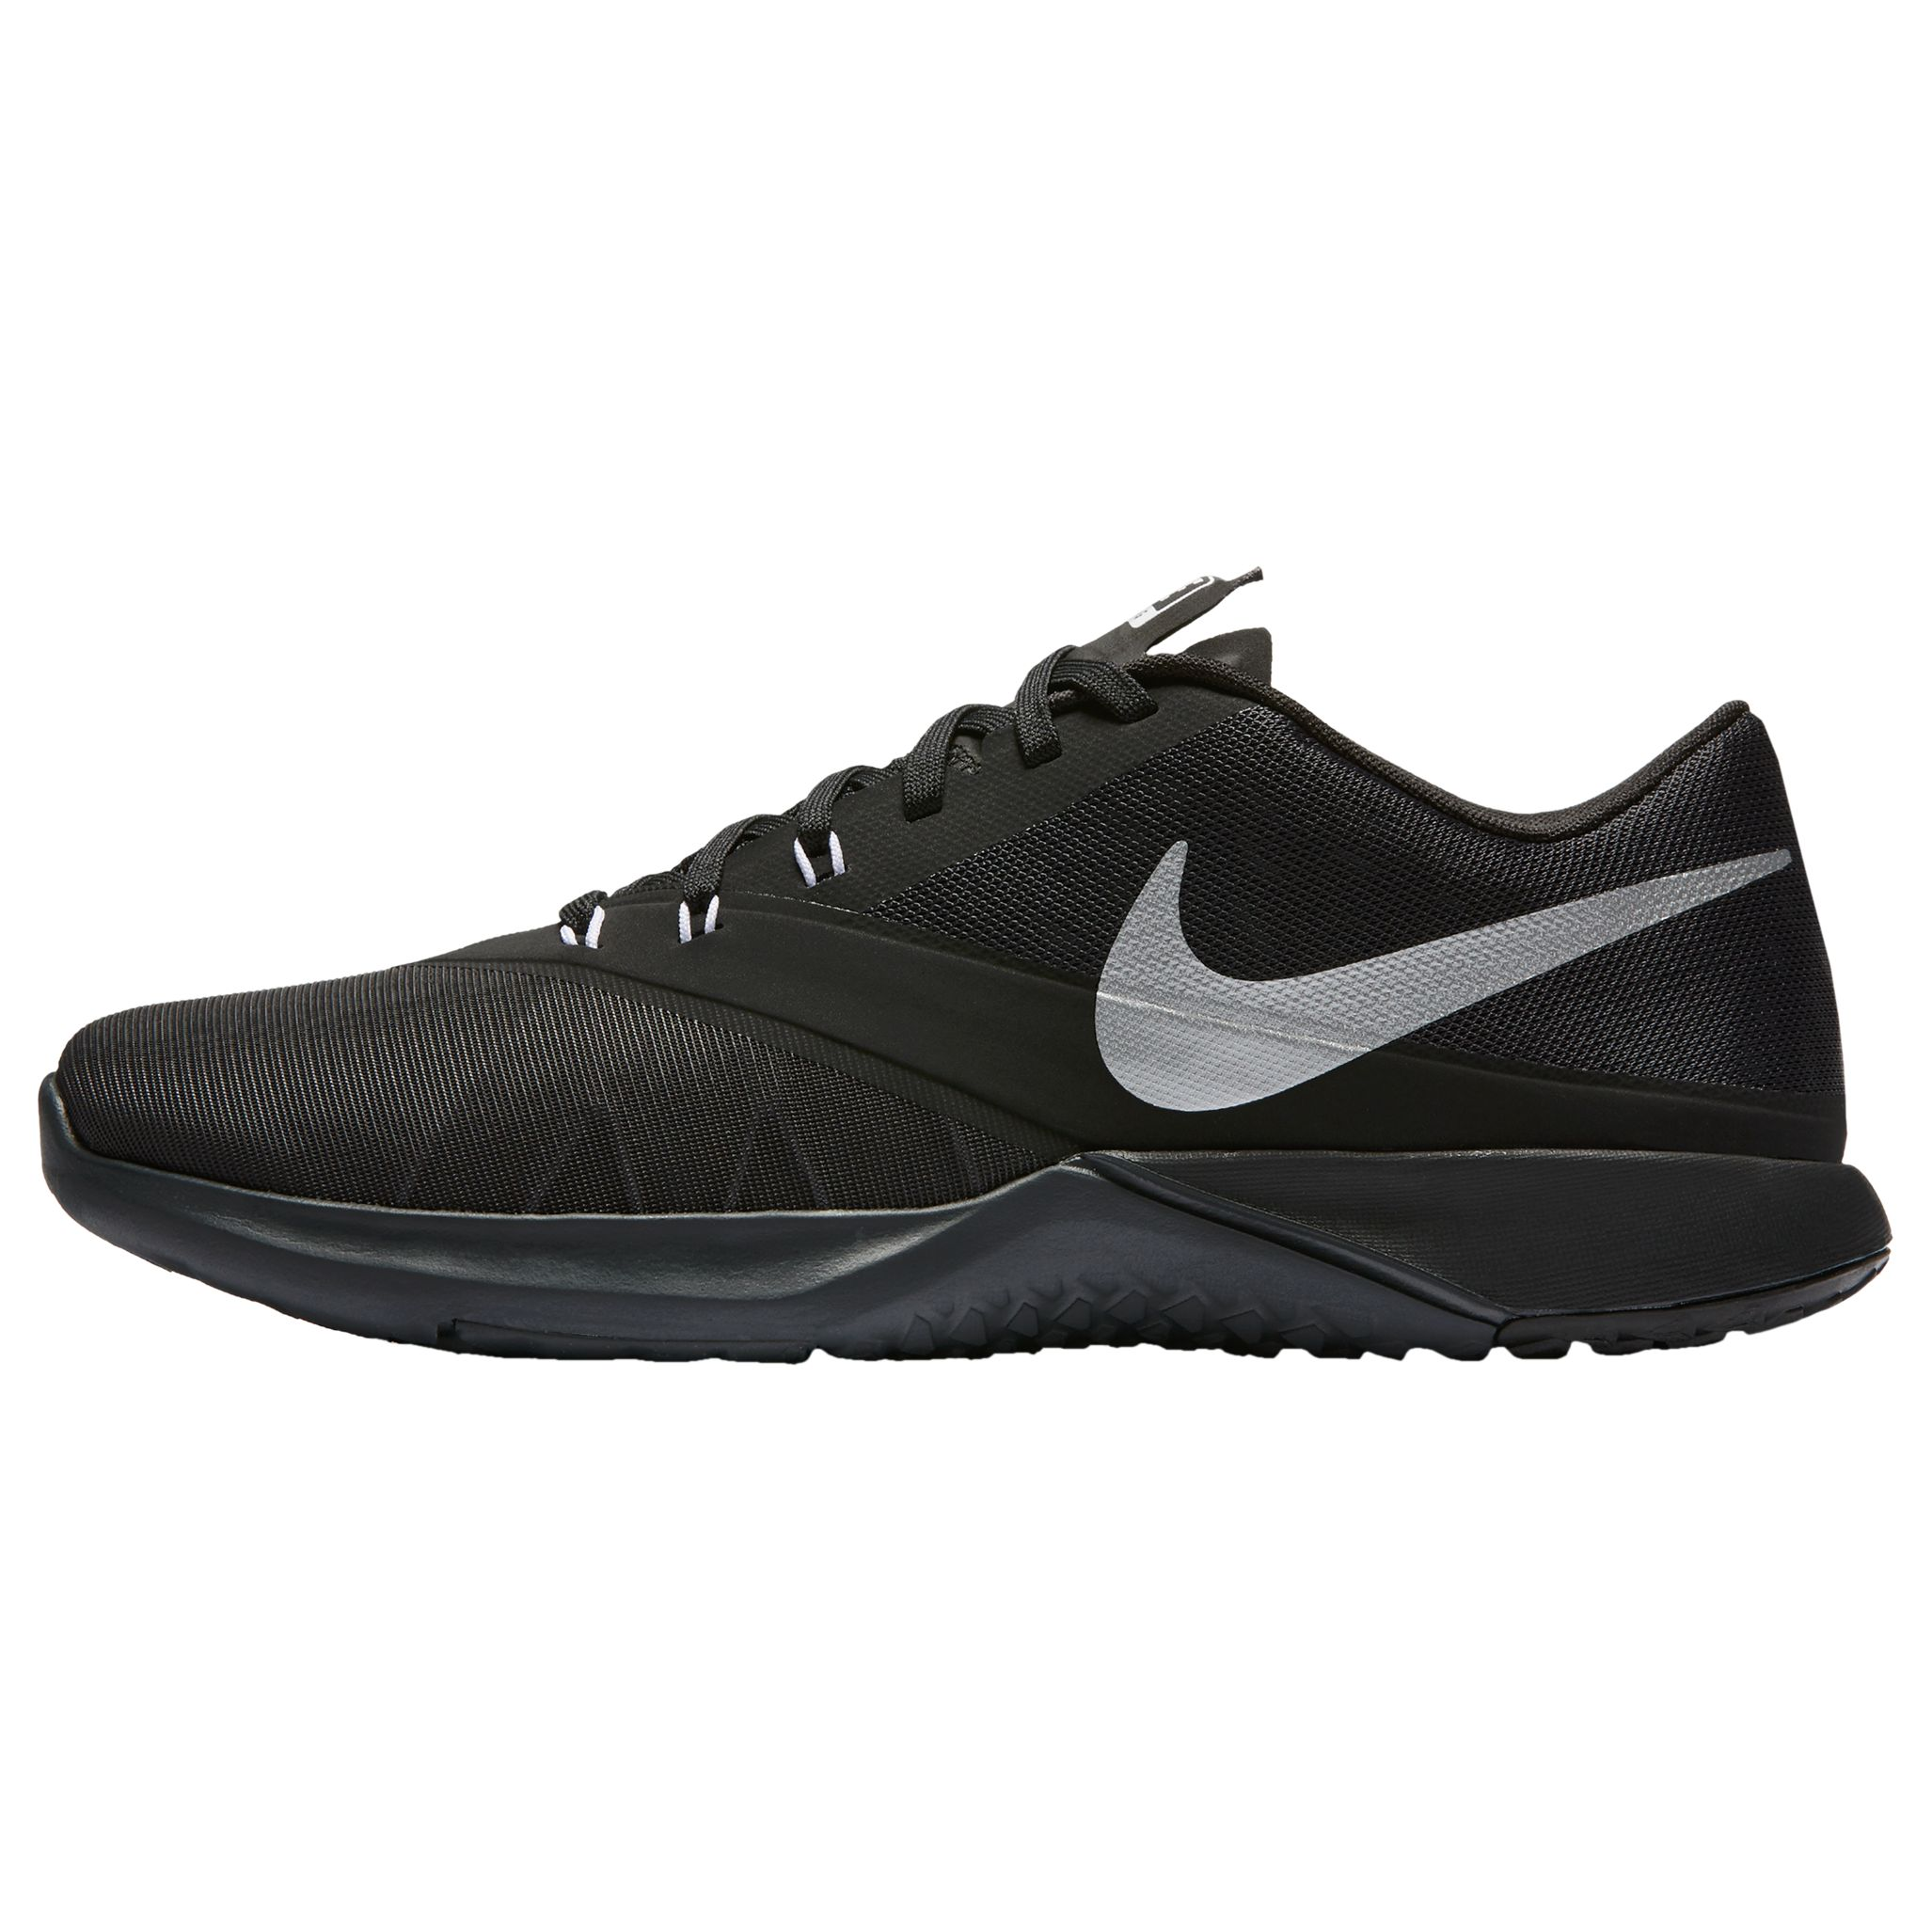 best website e6e5c 009f7 Nike FS Lite Trainer 4 Men's Cross Trainers, Anthracite ...